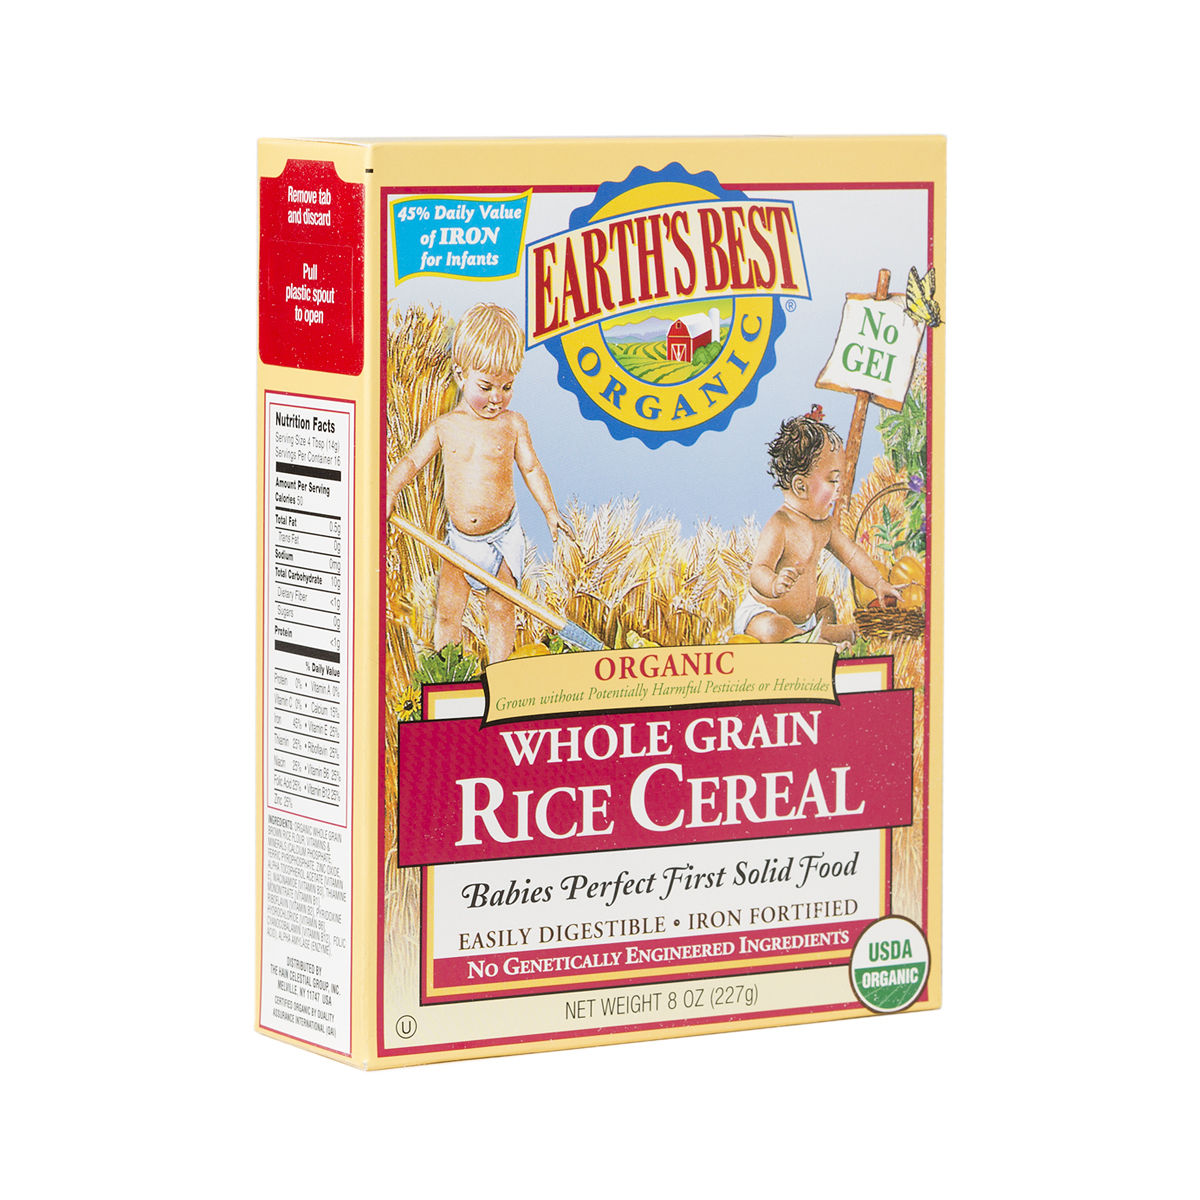 8 Oz Whole Grain Rice Cereal By Earth's Best